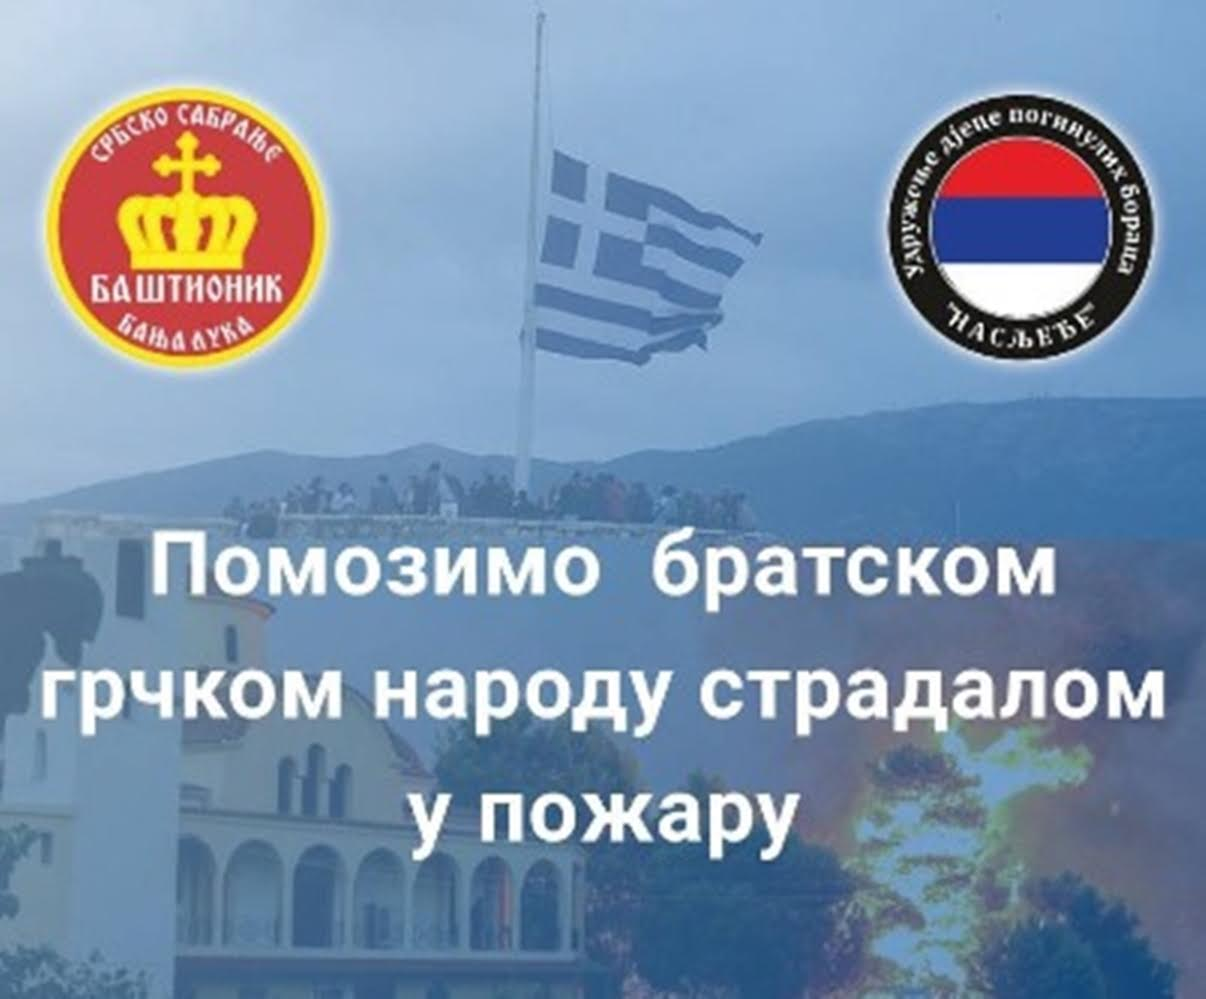 Republika Srpska helps Greek citizens hit by wildfires